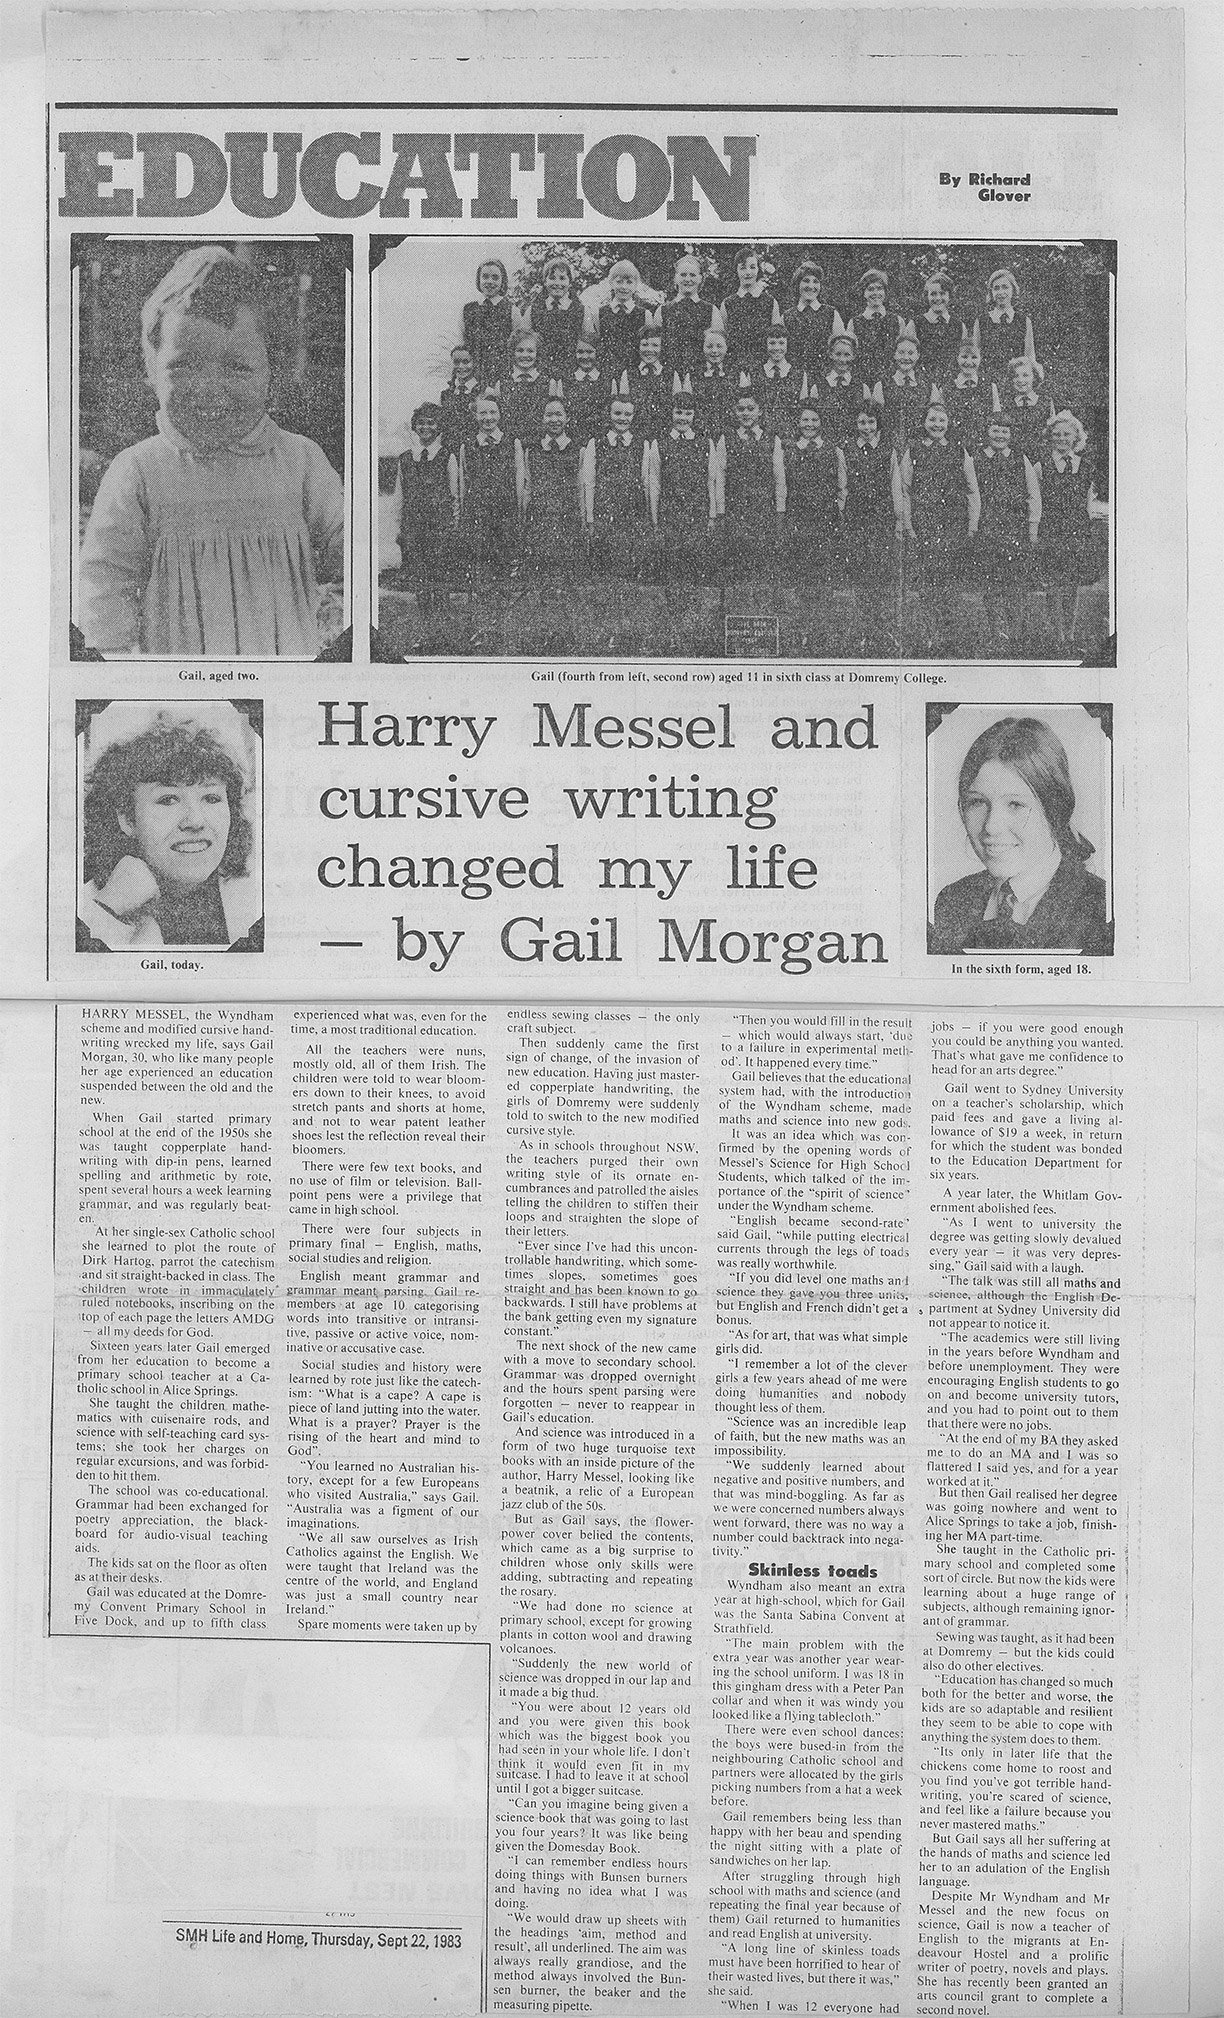 Harry Messel and cursive writing changed my life – by Gail Morgan